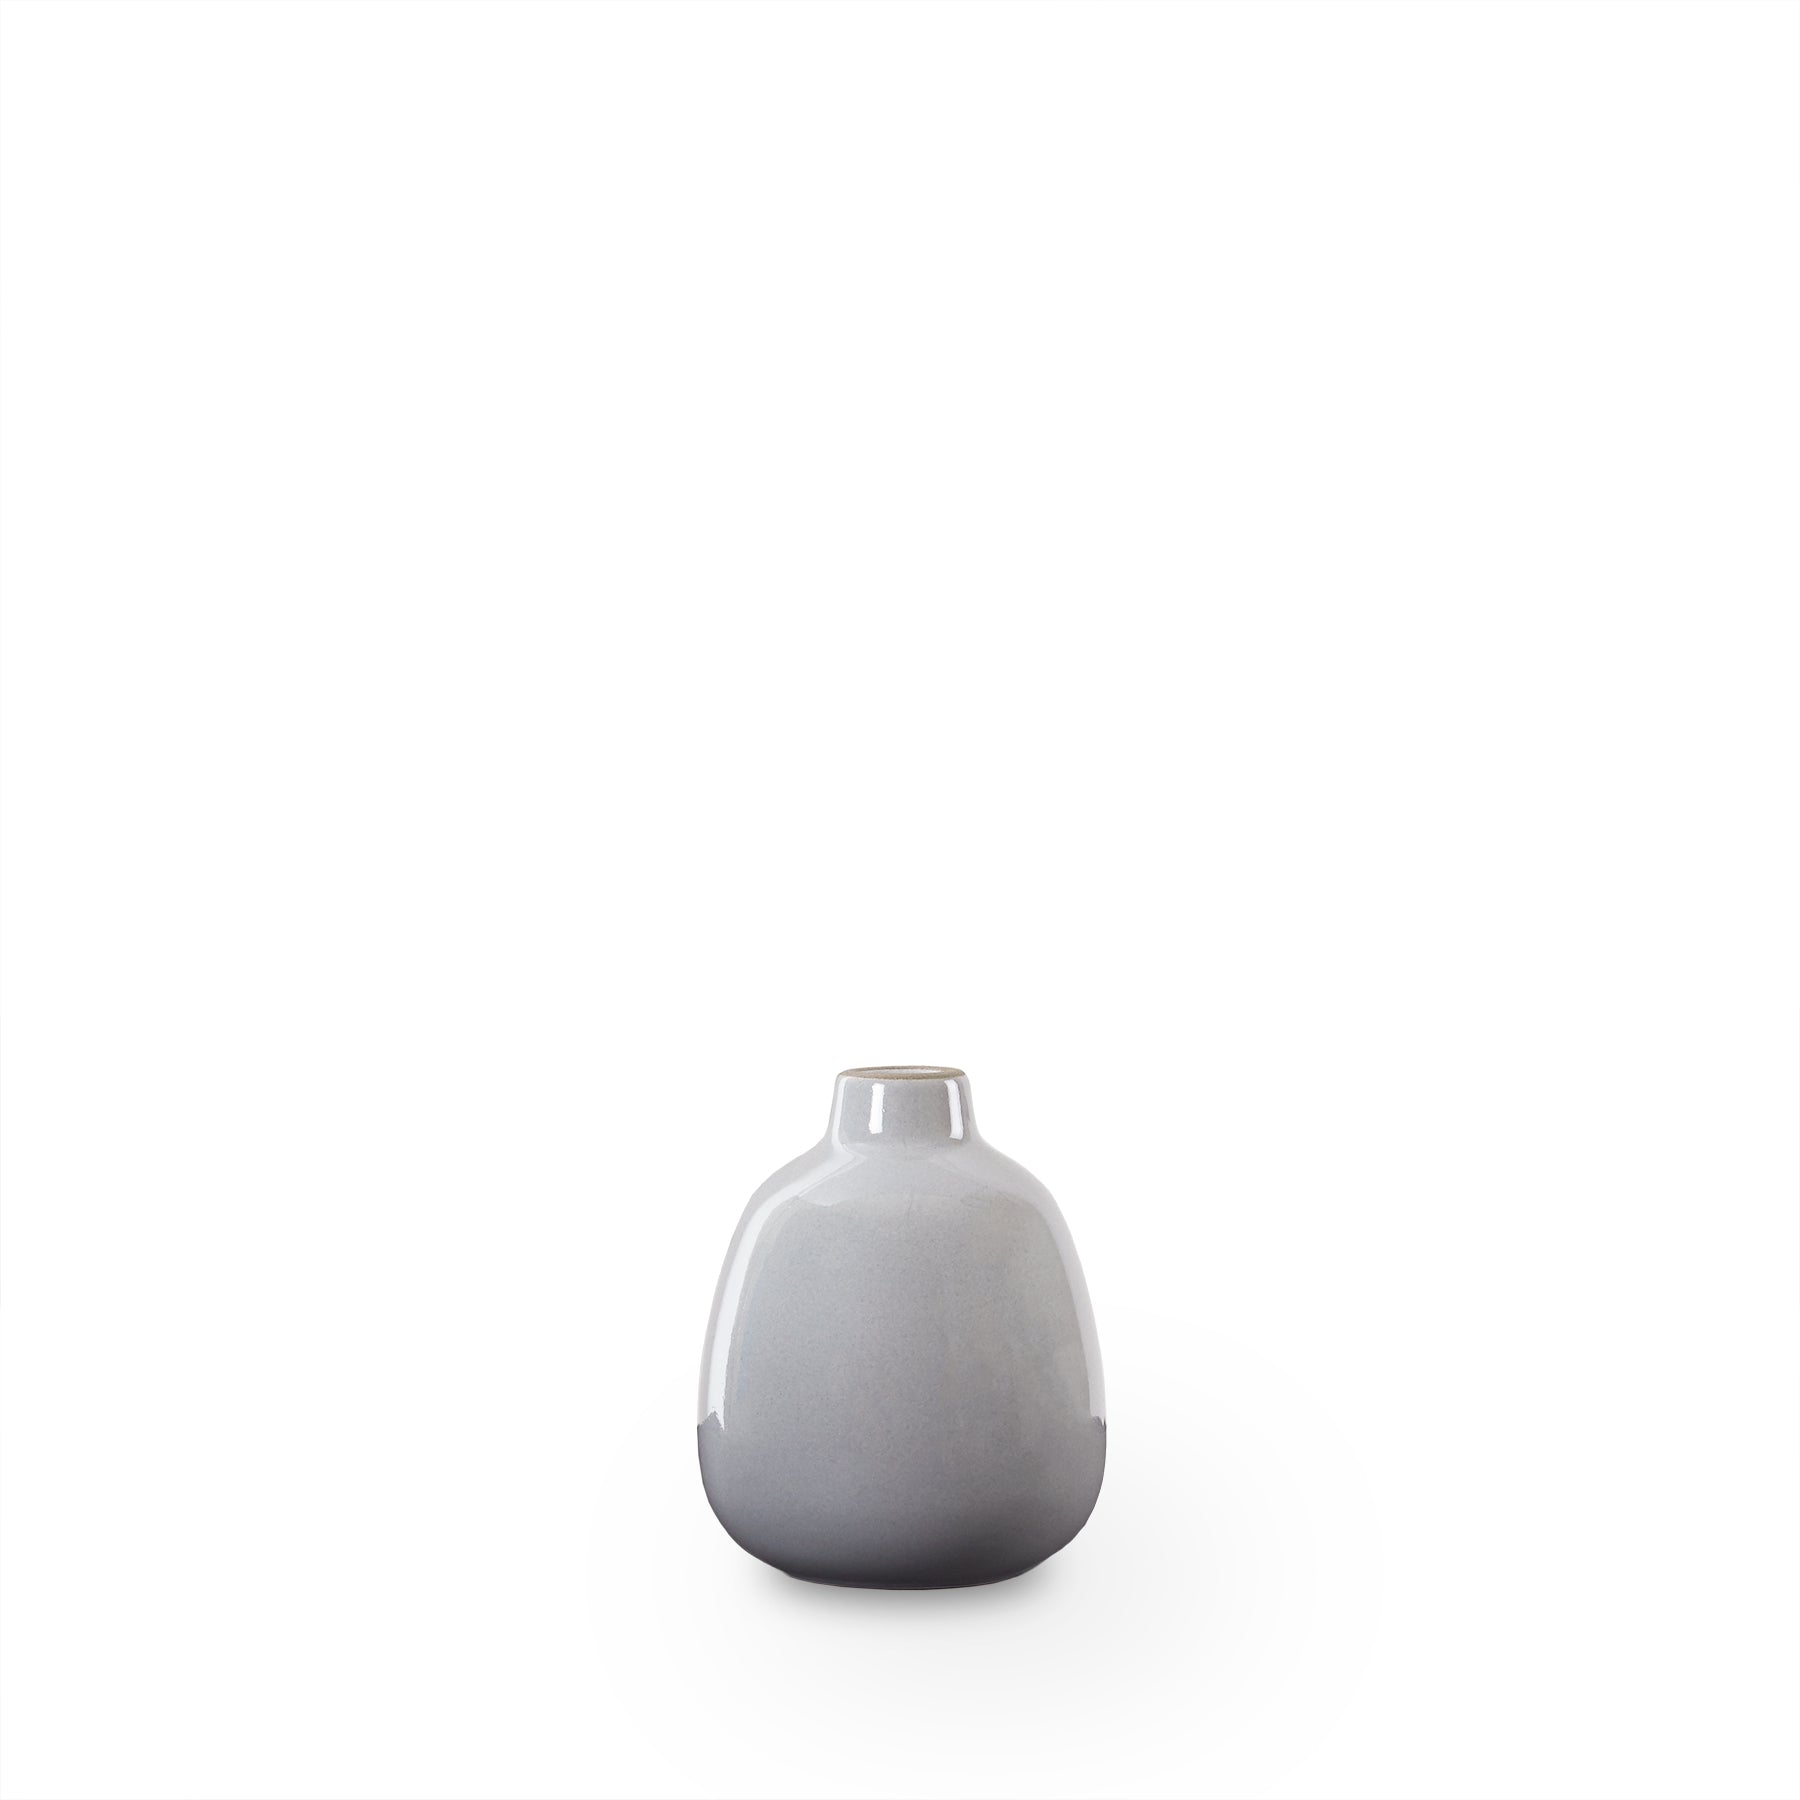 Bud Vase in Light Grey Whale Zoom Image 1